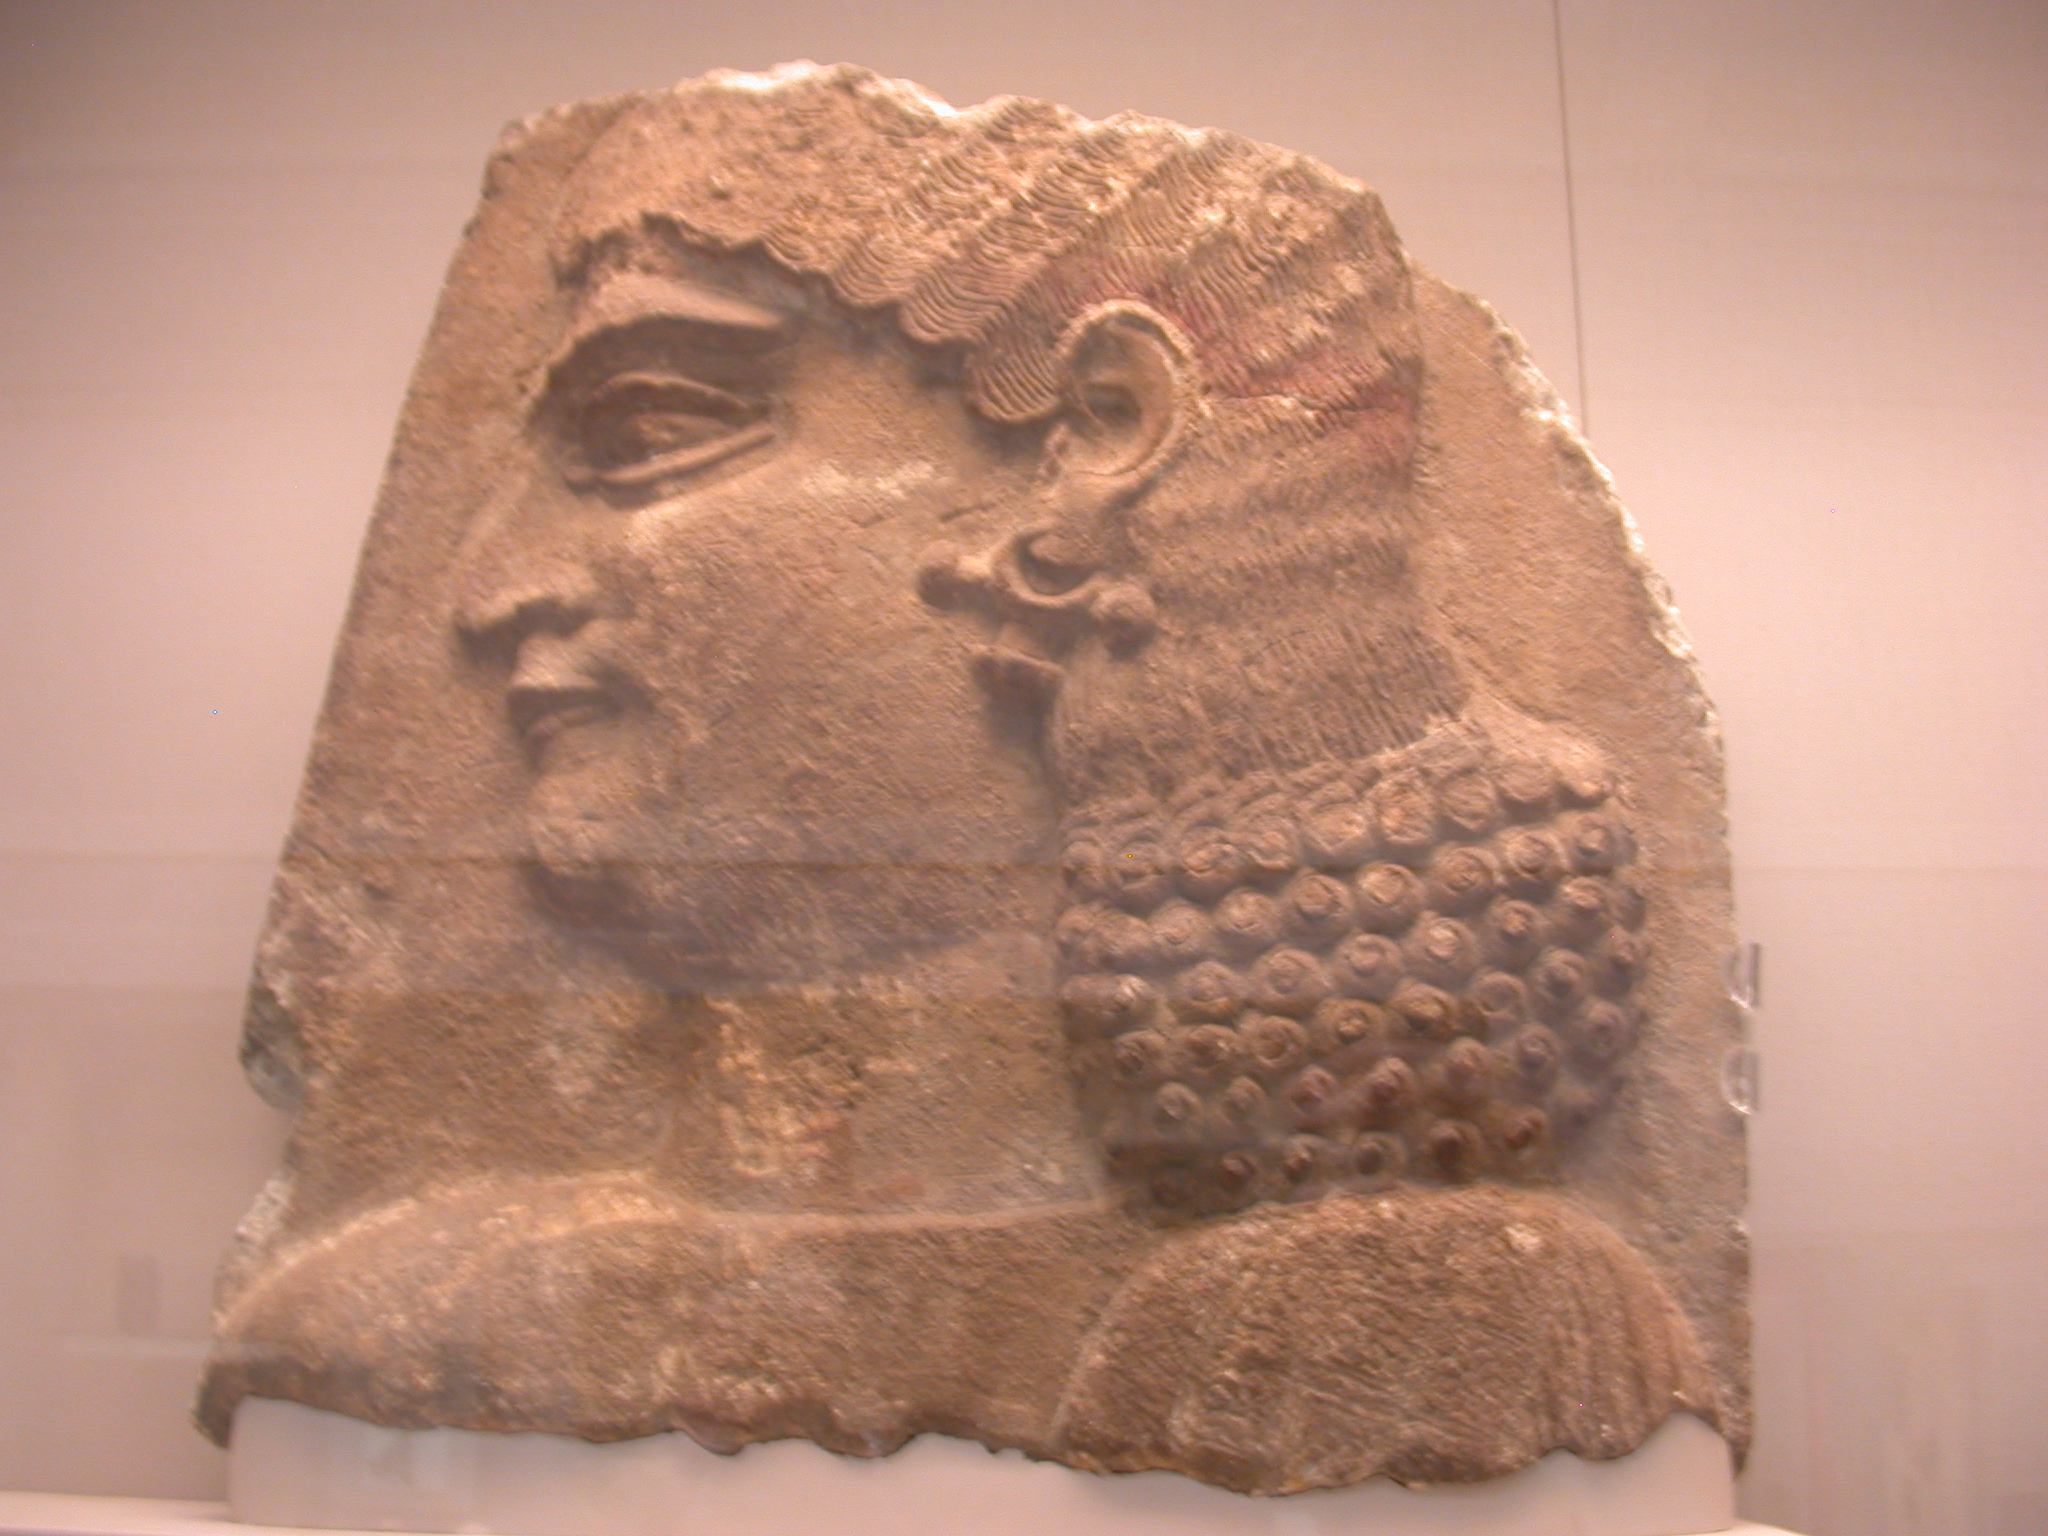 Head of a Eunuch Wearing Red Headband, Gypsum Wall Panel, About 710 BCE, Palace of Sargon, Khorsabad, Assyria, in British Museum, London, England